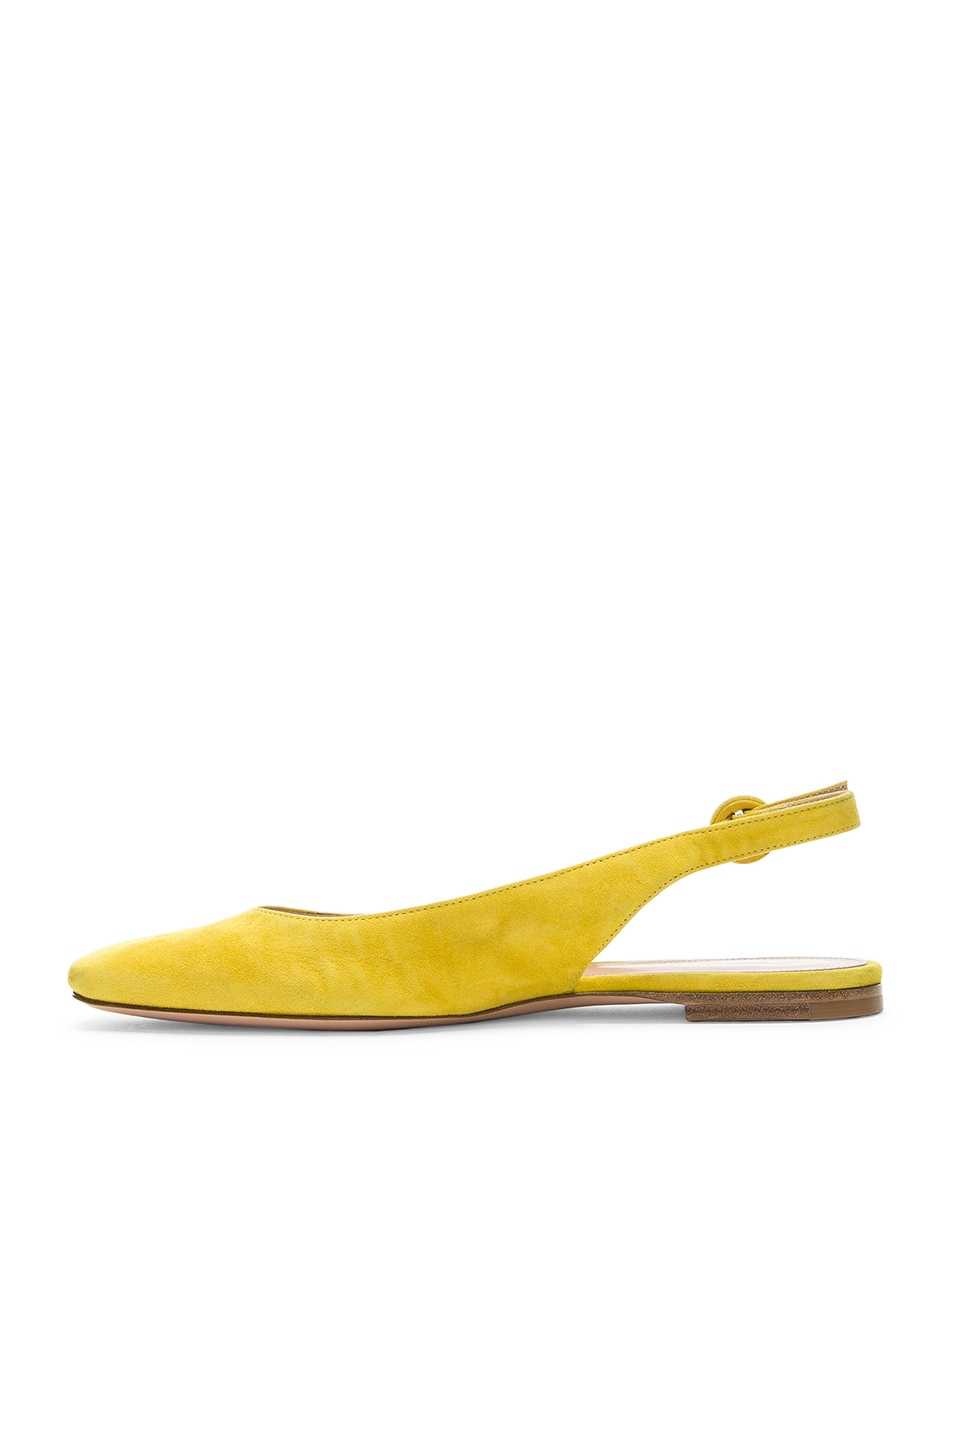 Image 5 of Gianvito Rossi Tish Slingback Flat in Mimosa